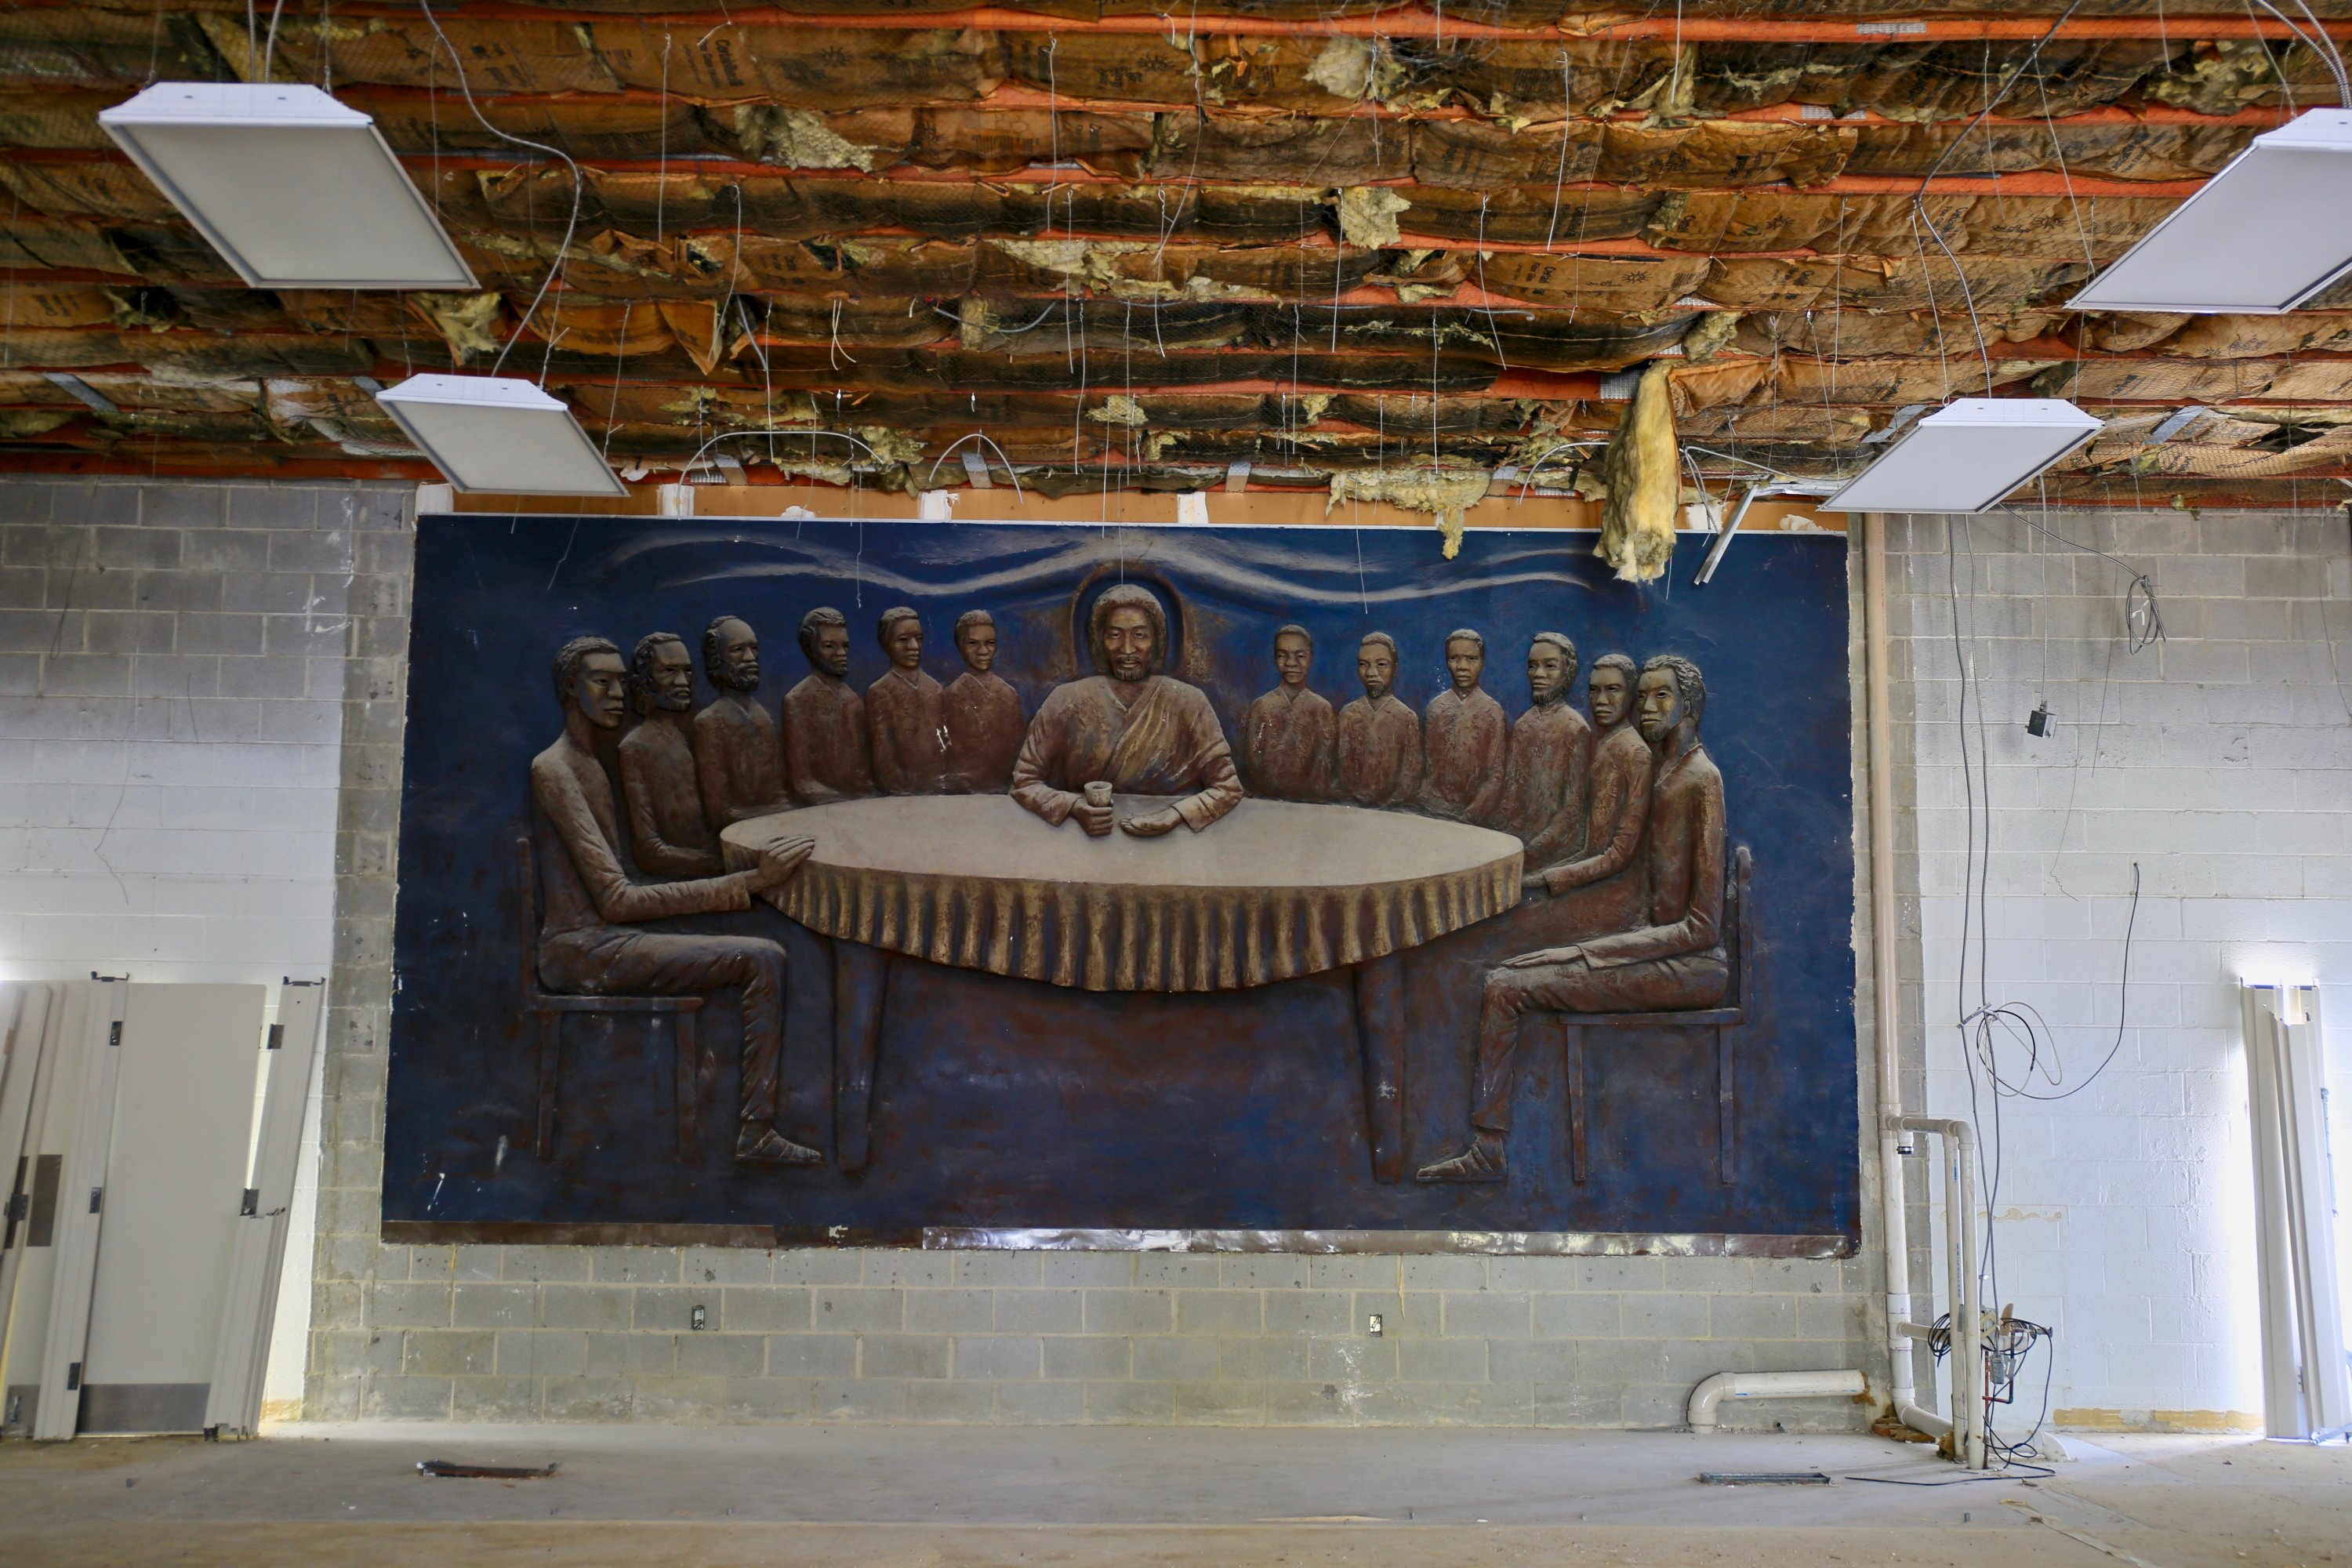 A Massive Sculpture of an African American Last Supper, Hidden for Years, Has Been Discovered in Columbia Heights